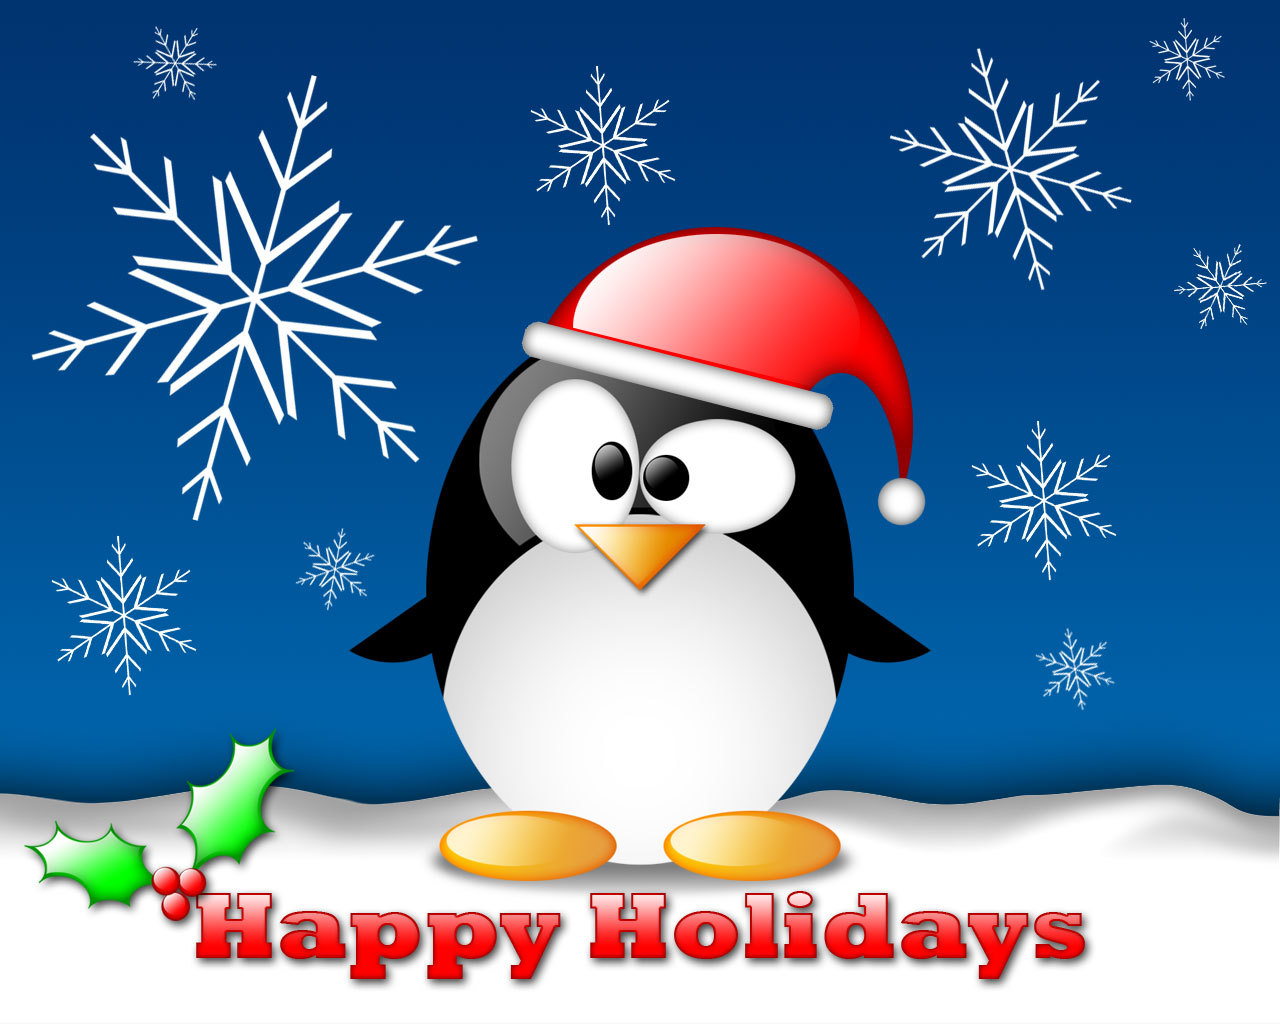 Happy Holidays Graphic for Facebook Sharing